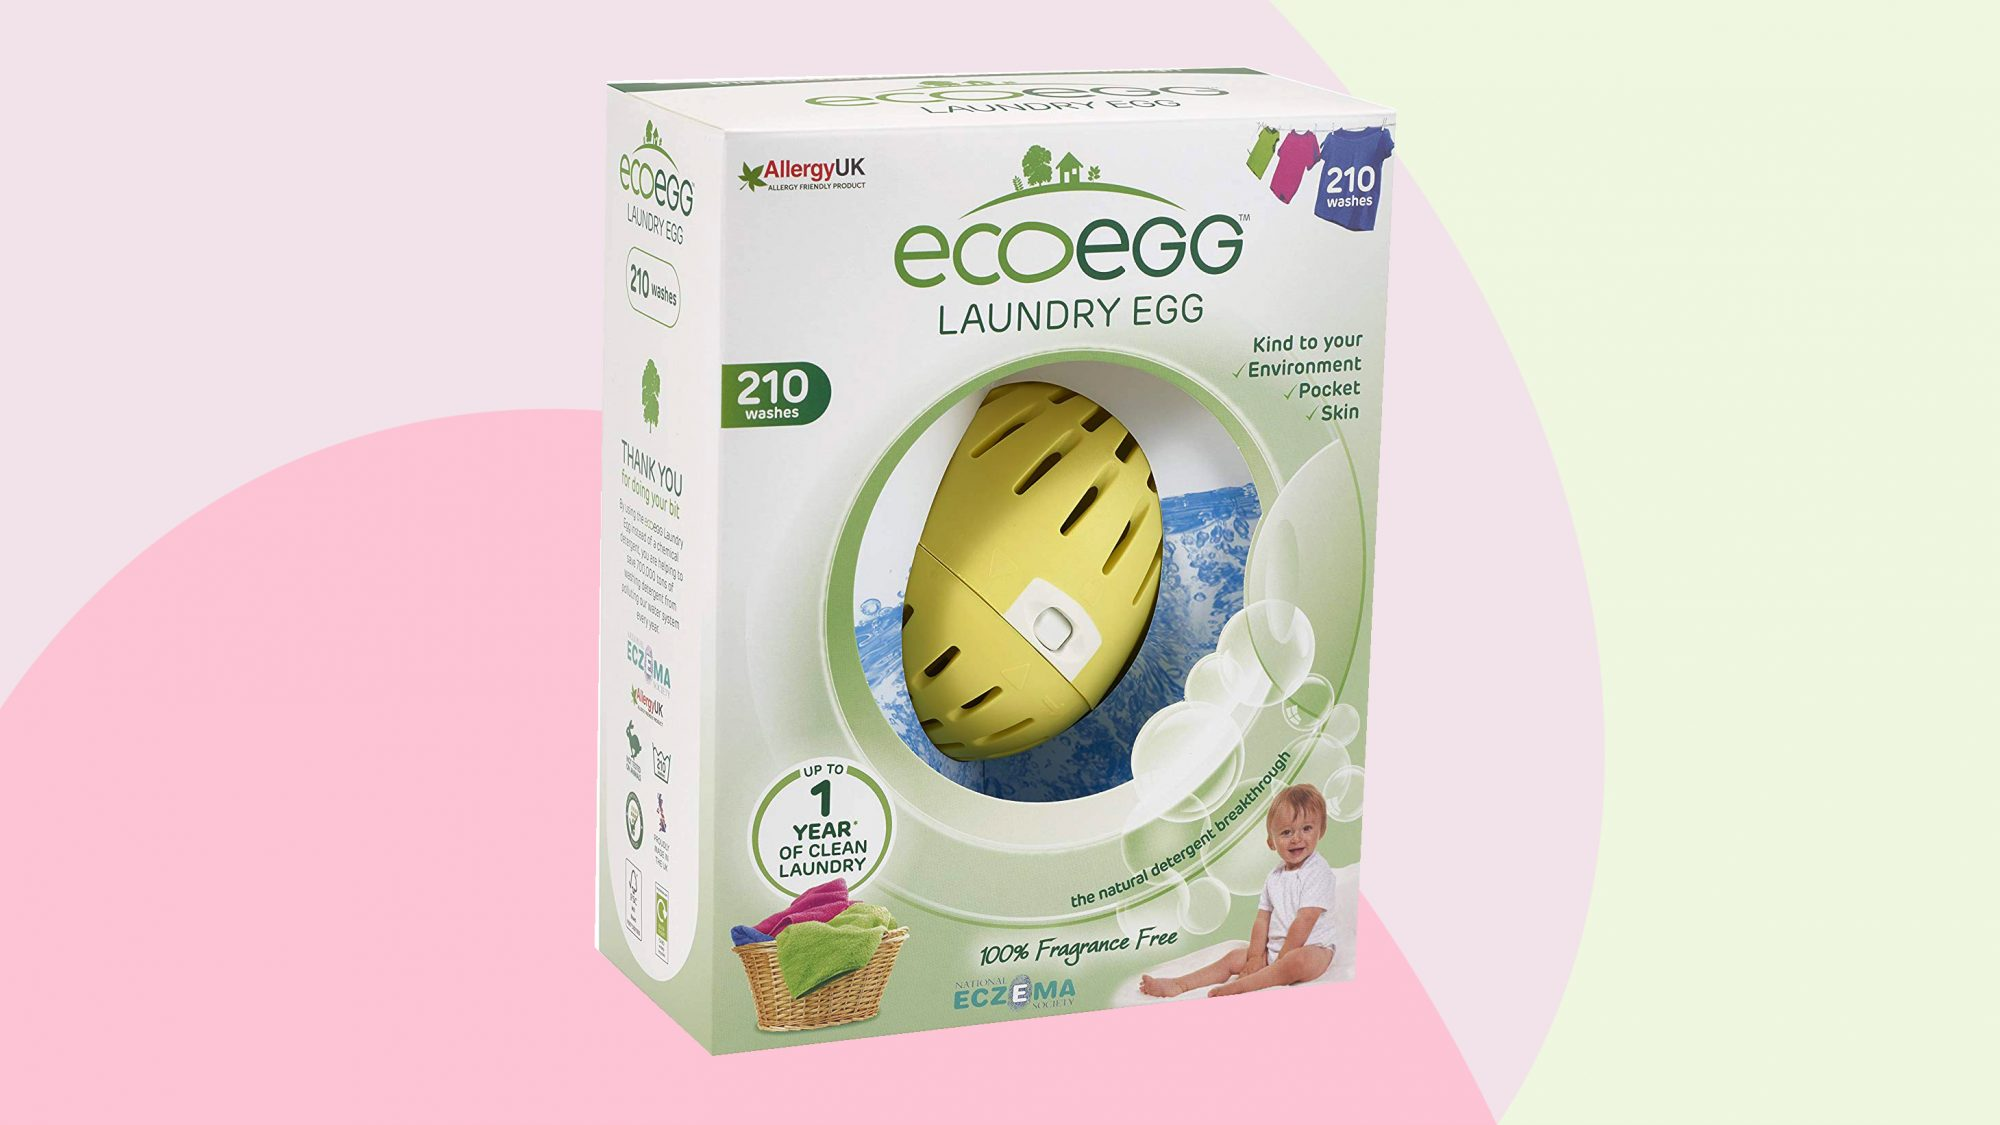 EcoEgg Laundry Product